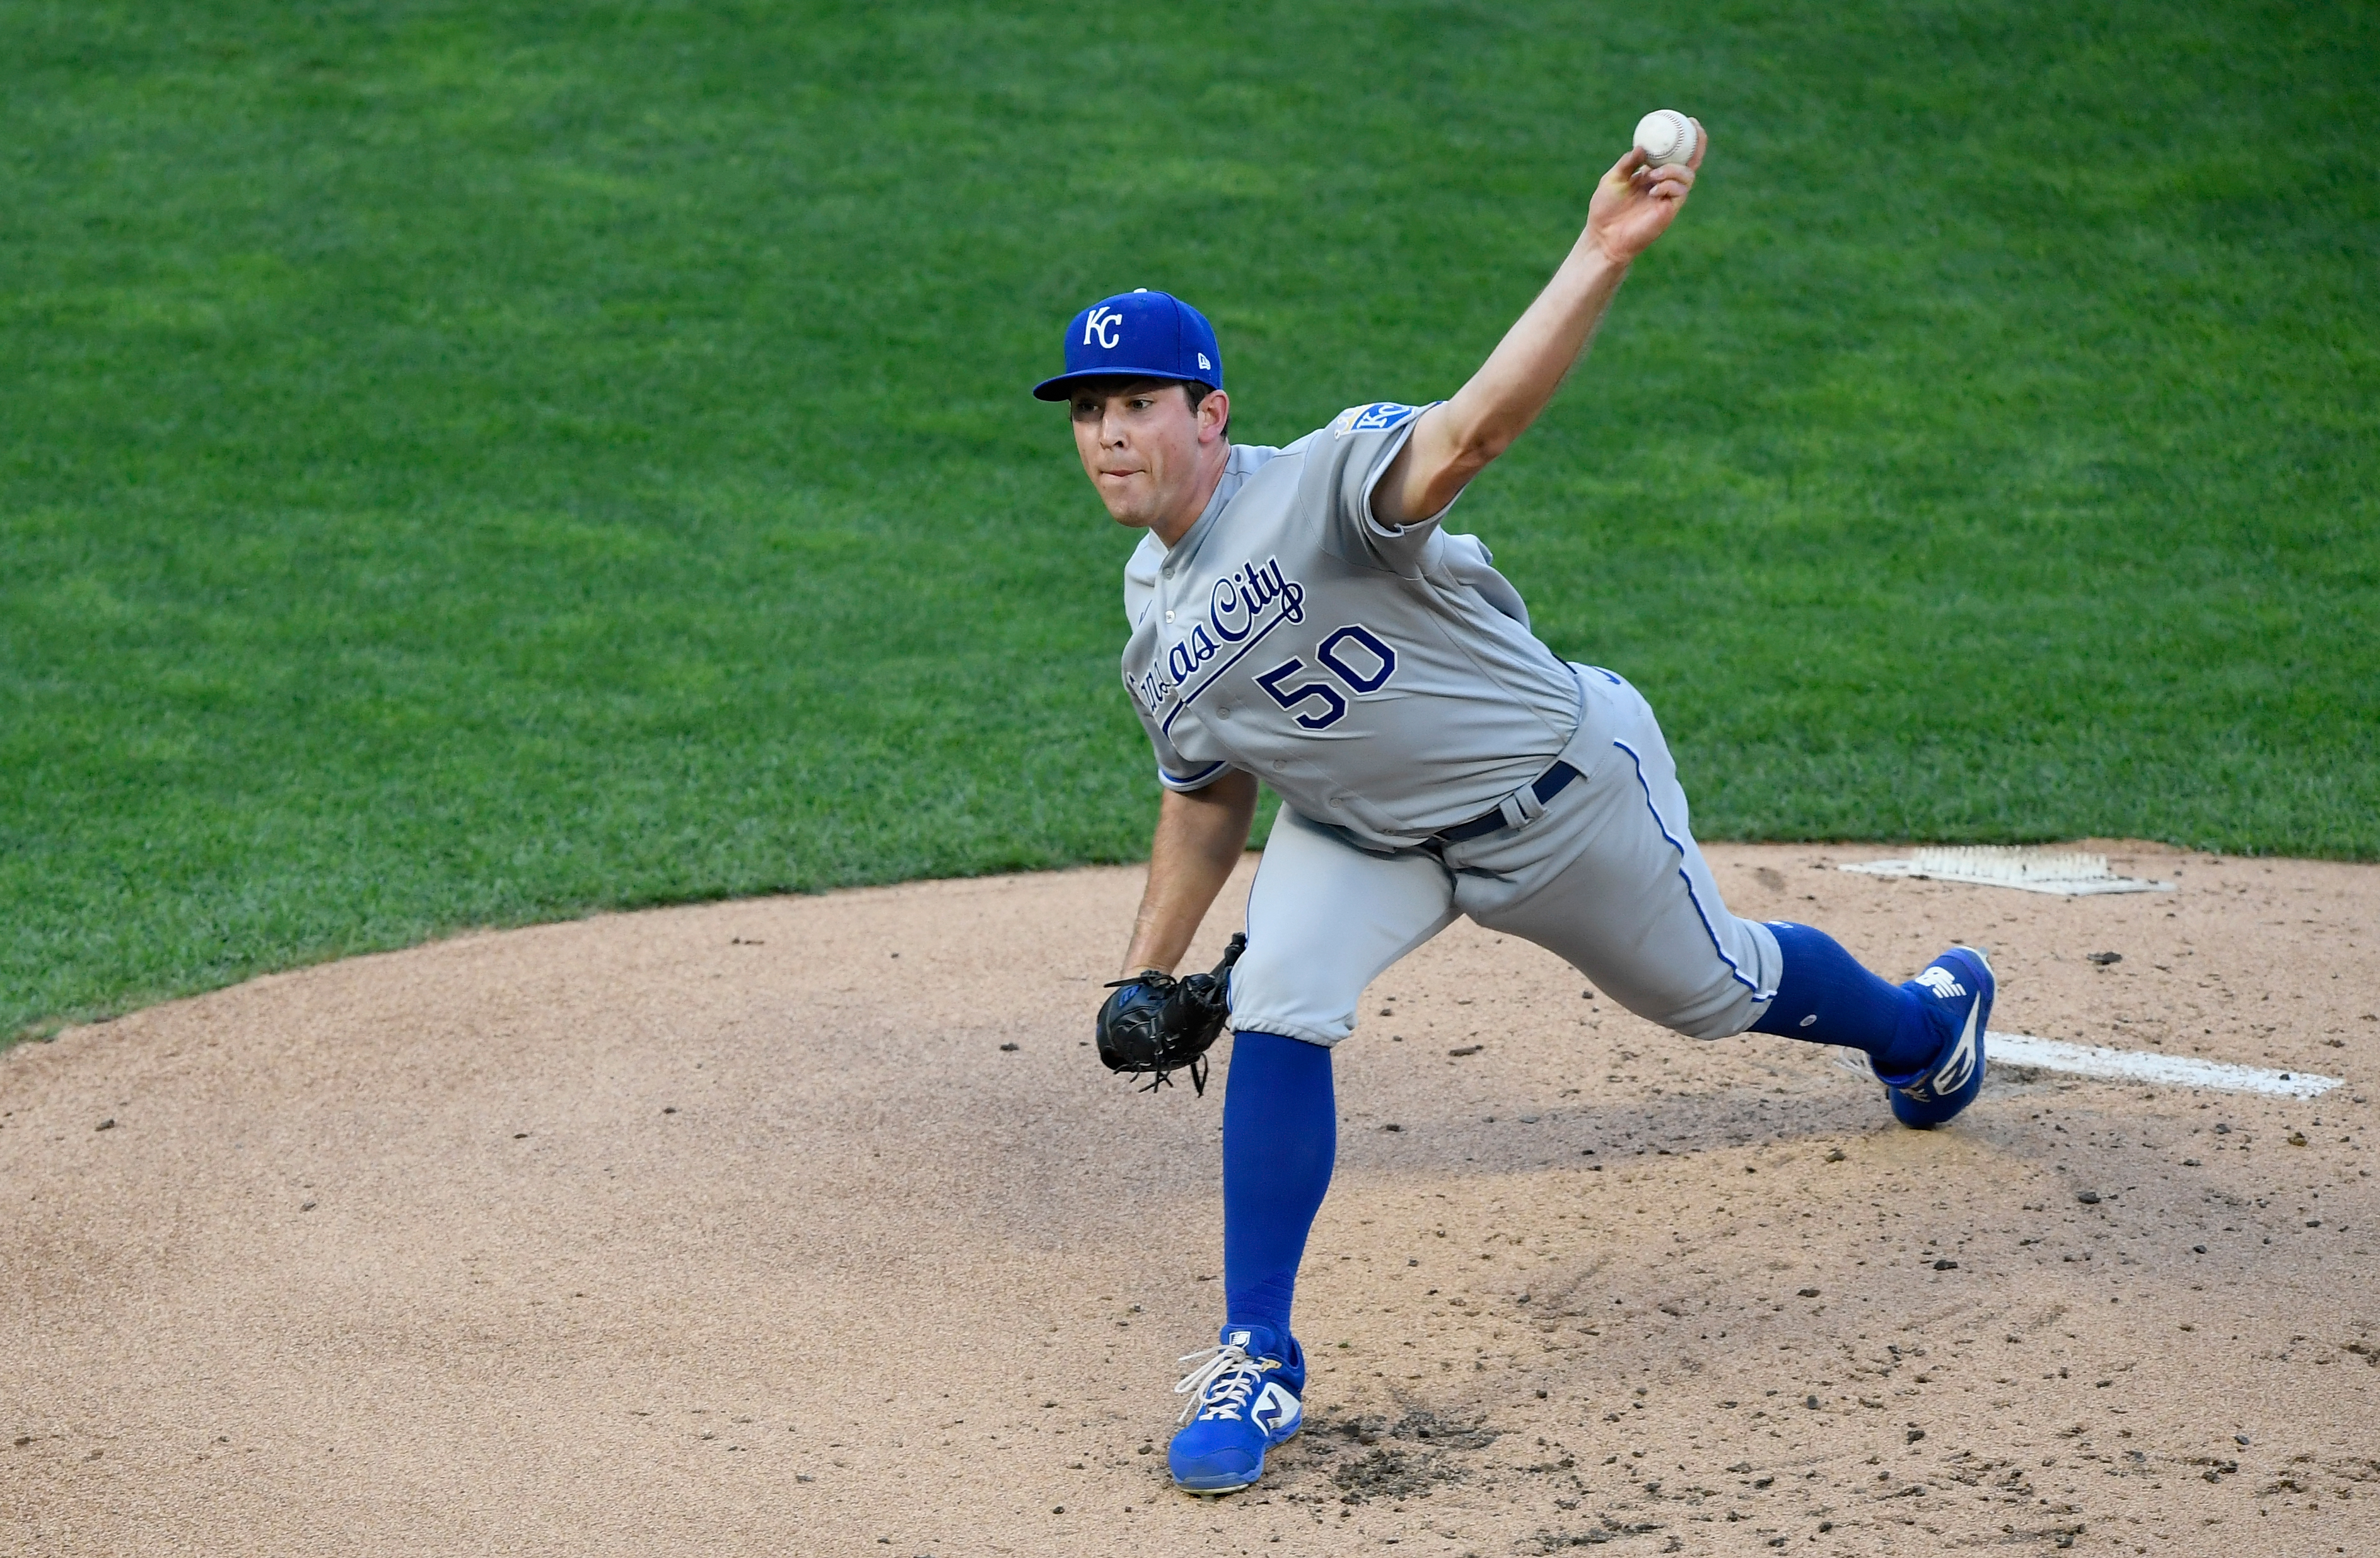 Kris Bubic #50 of the Kansas City Royals delivers a pitch against the Minnesota Twins during the first inning of the game at Target Field on August 17, 2020 in Minneapolis, Minnesota.